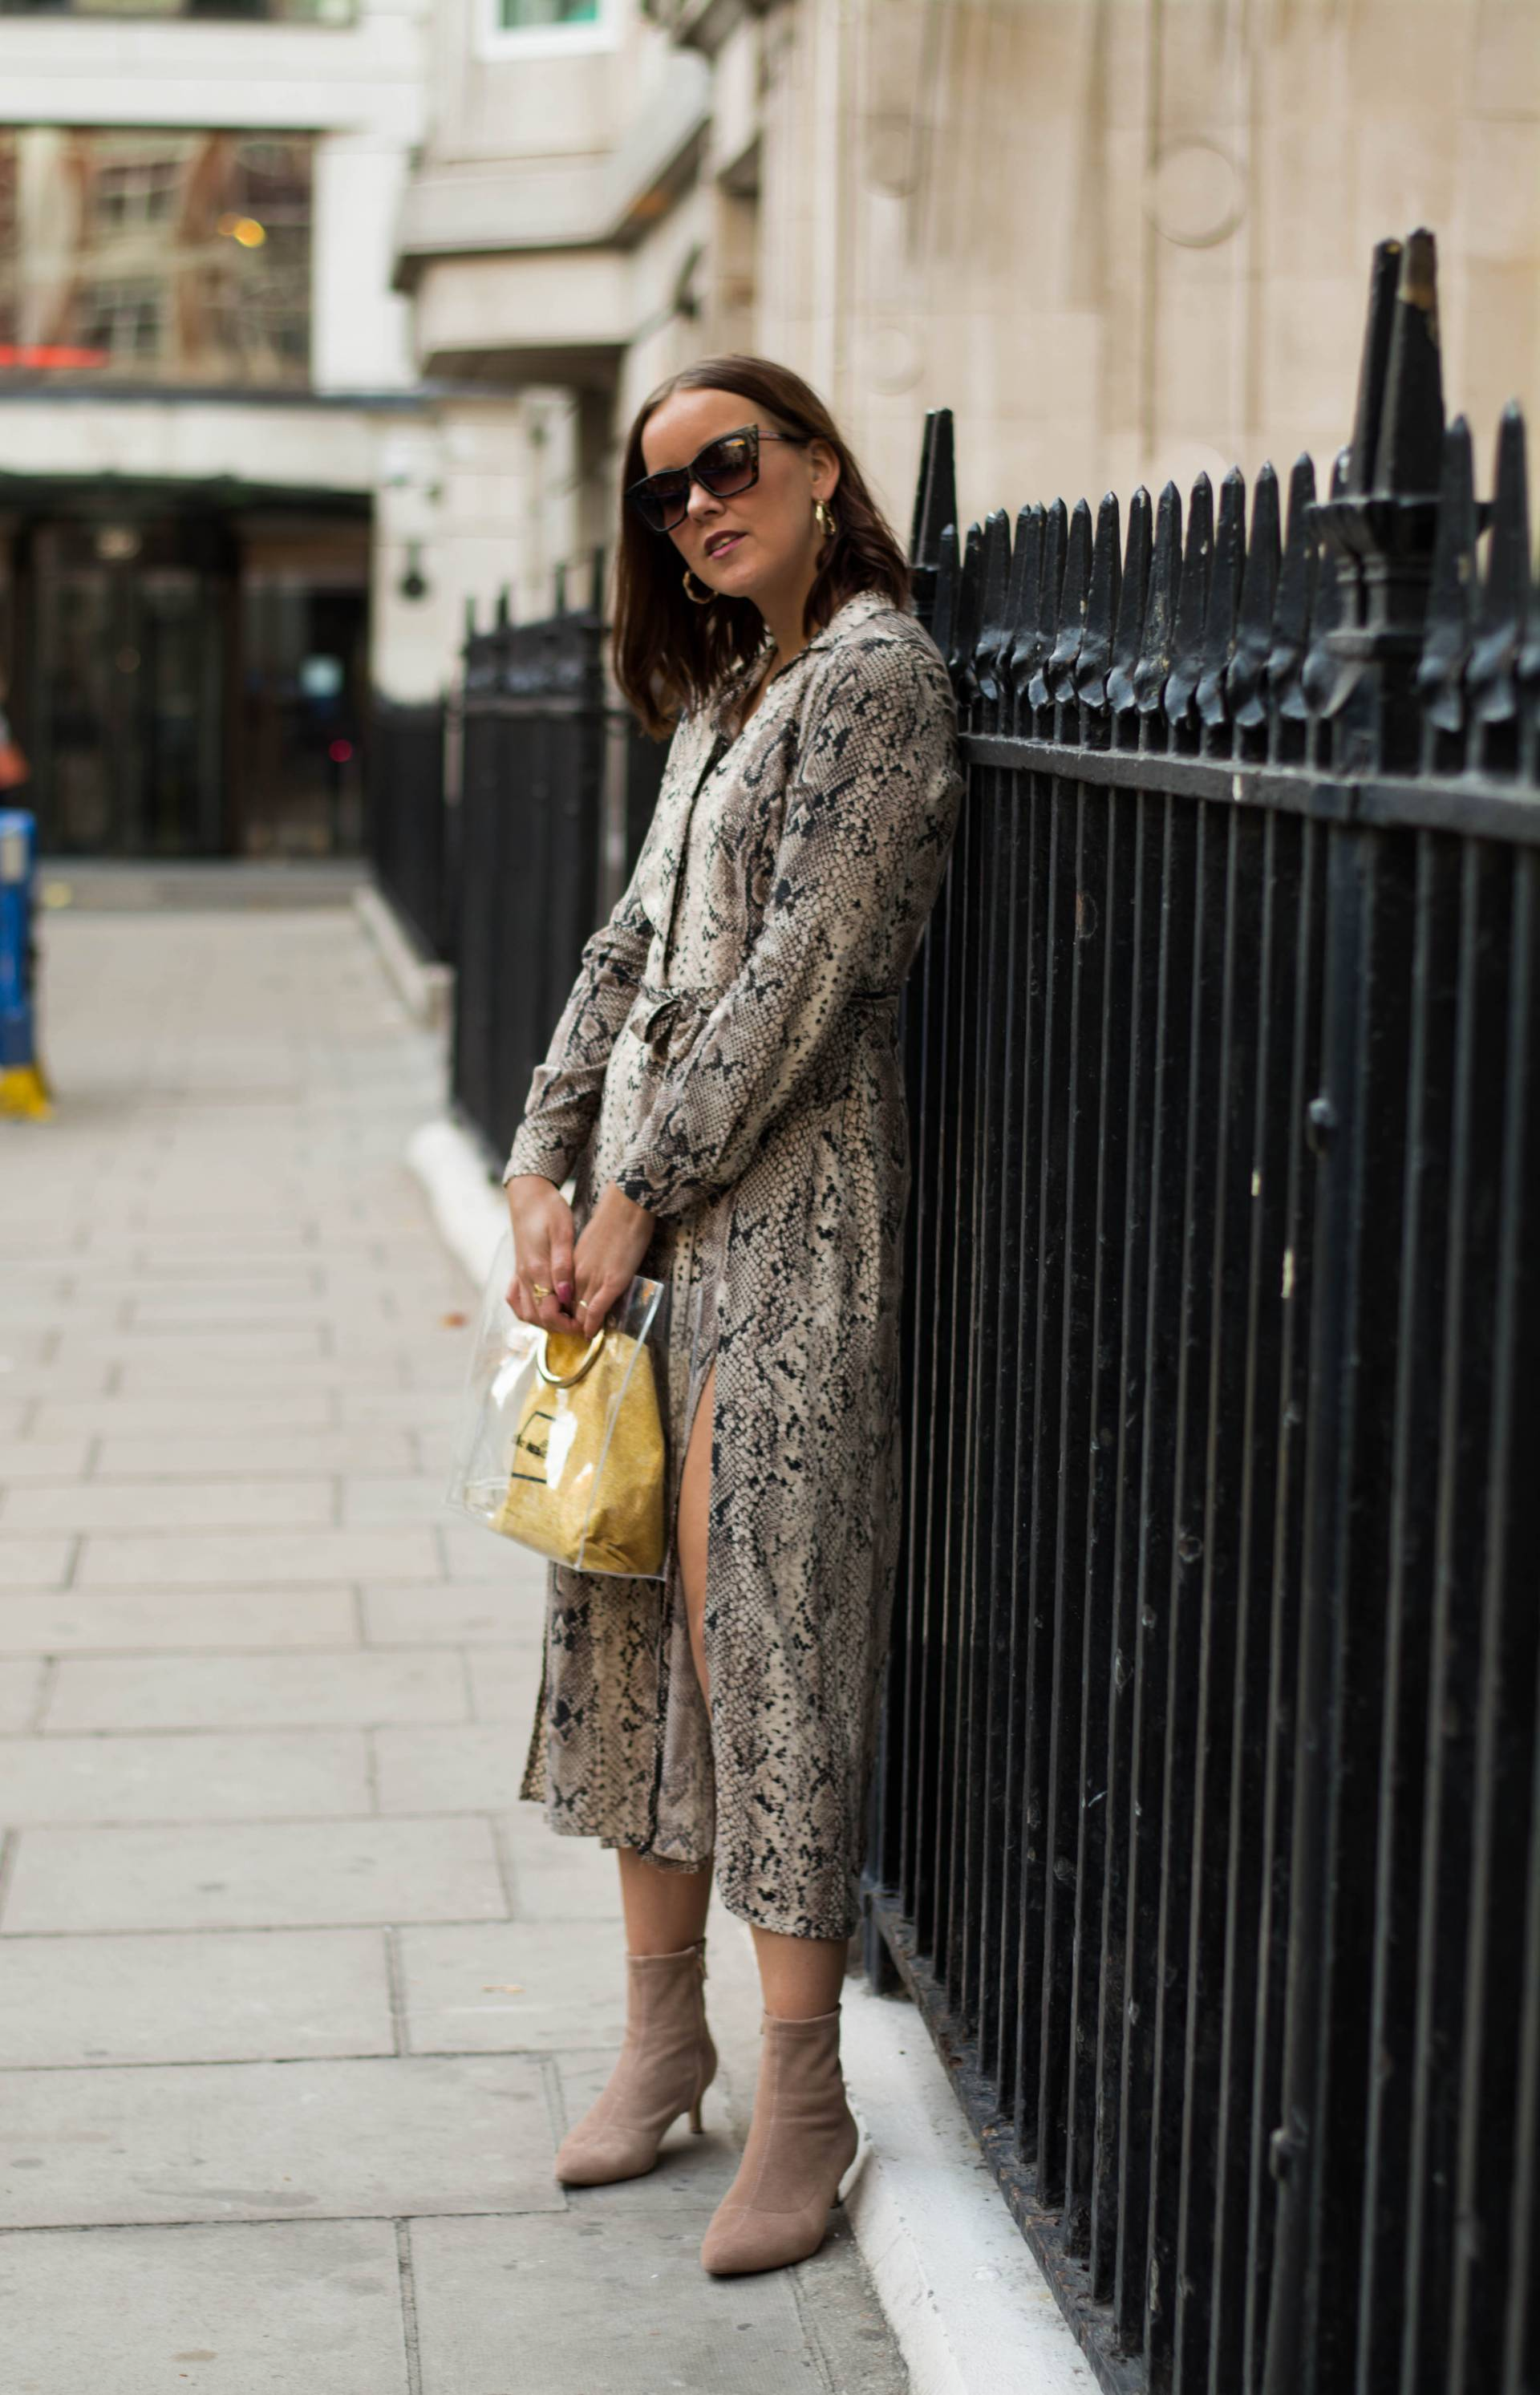 style-appetite-london-schlangenprint-kleid